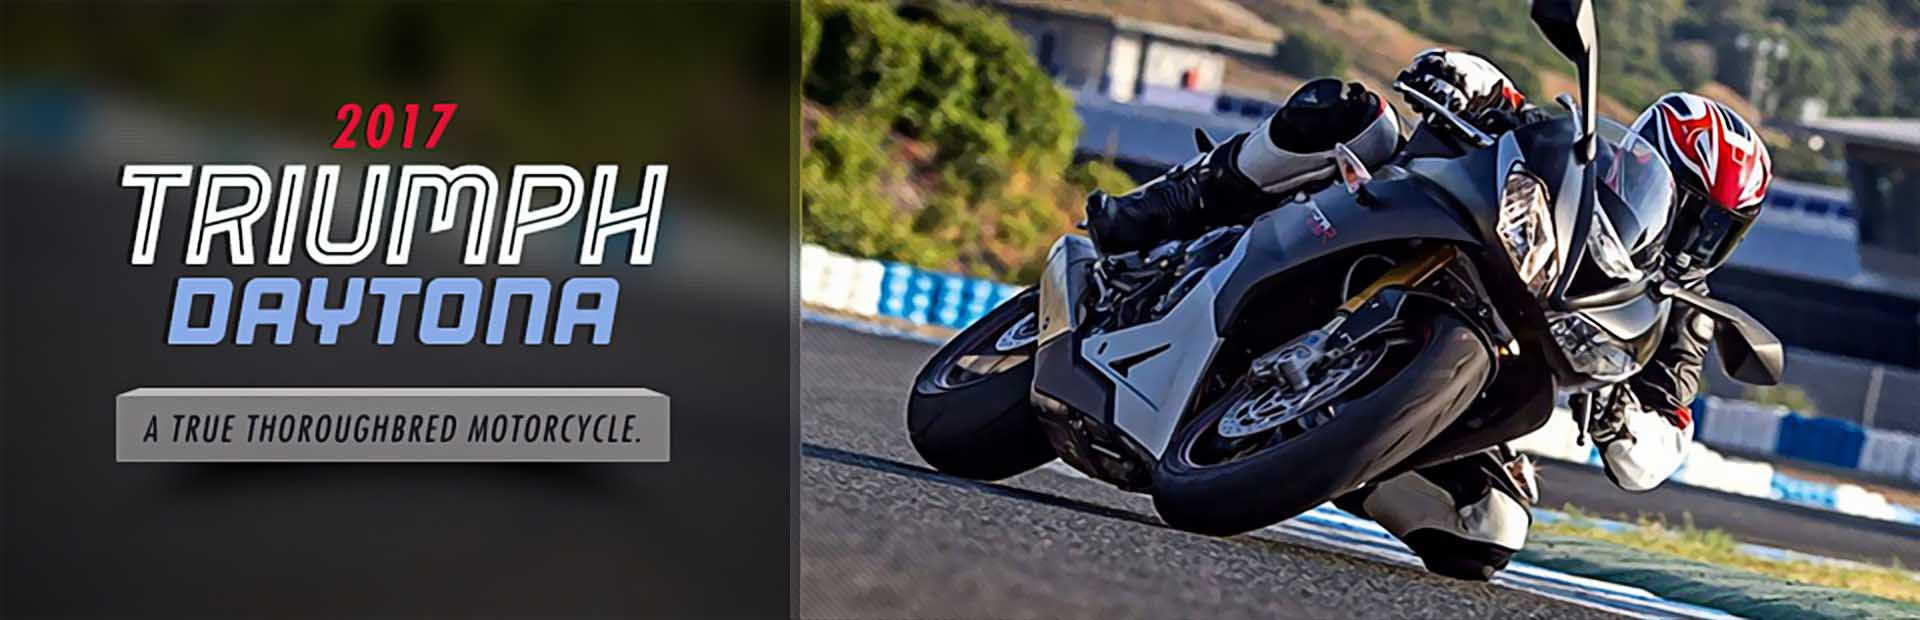 2017 Triumph Daytona: Click here to view the models.